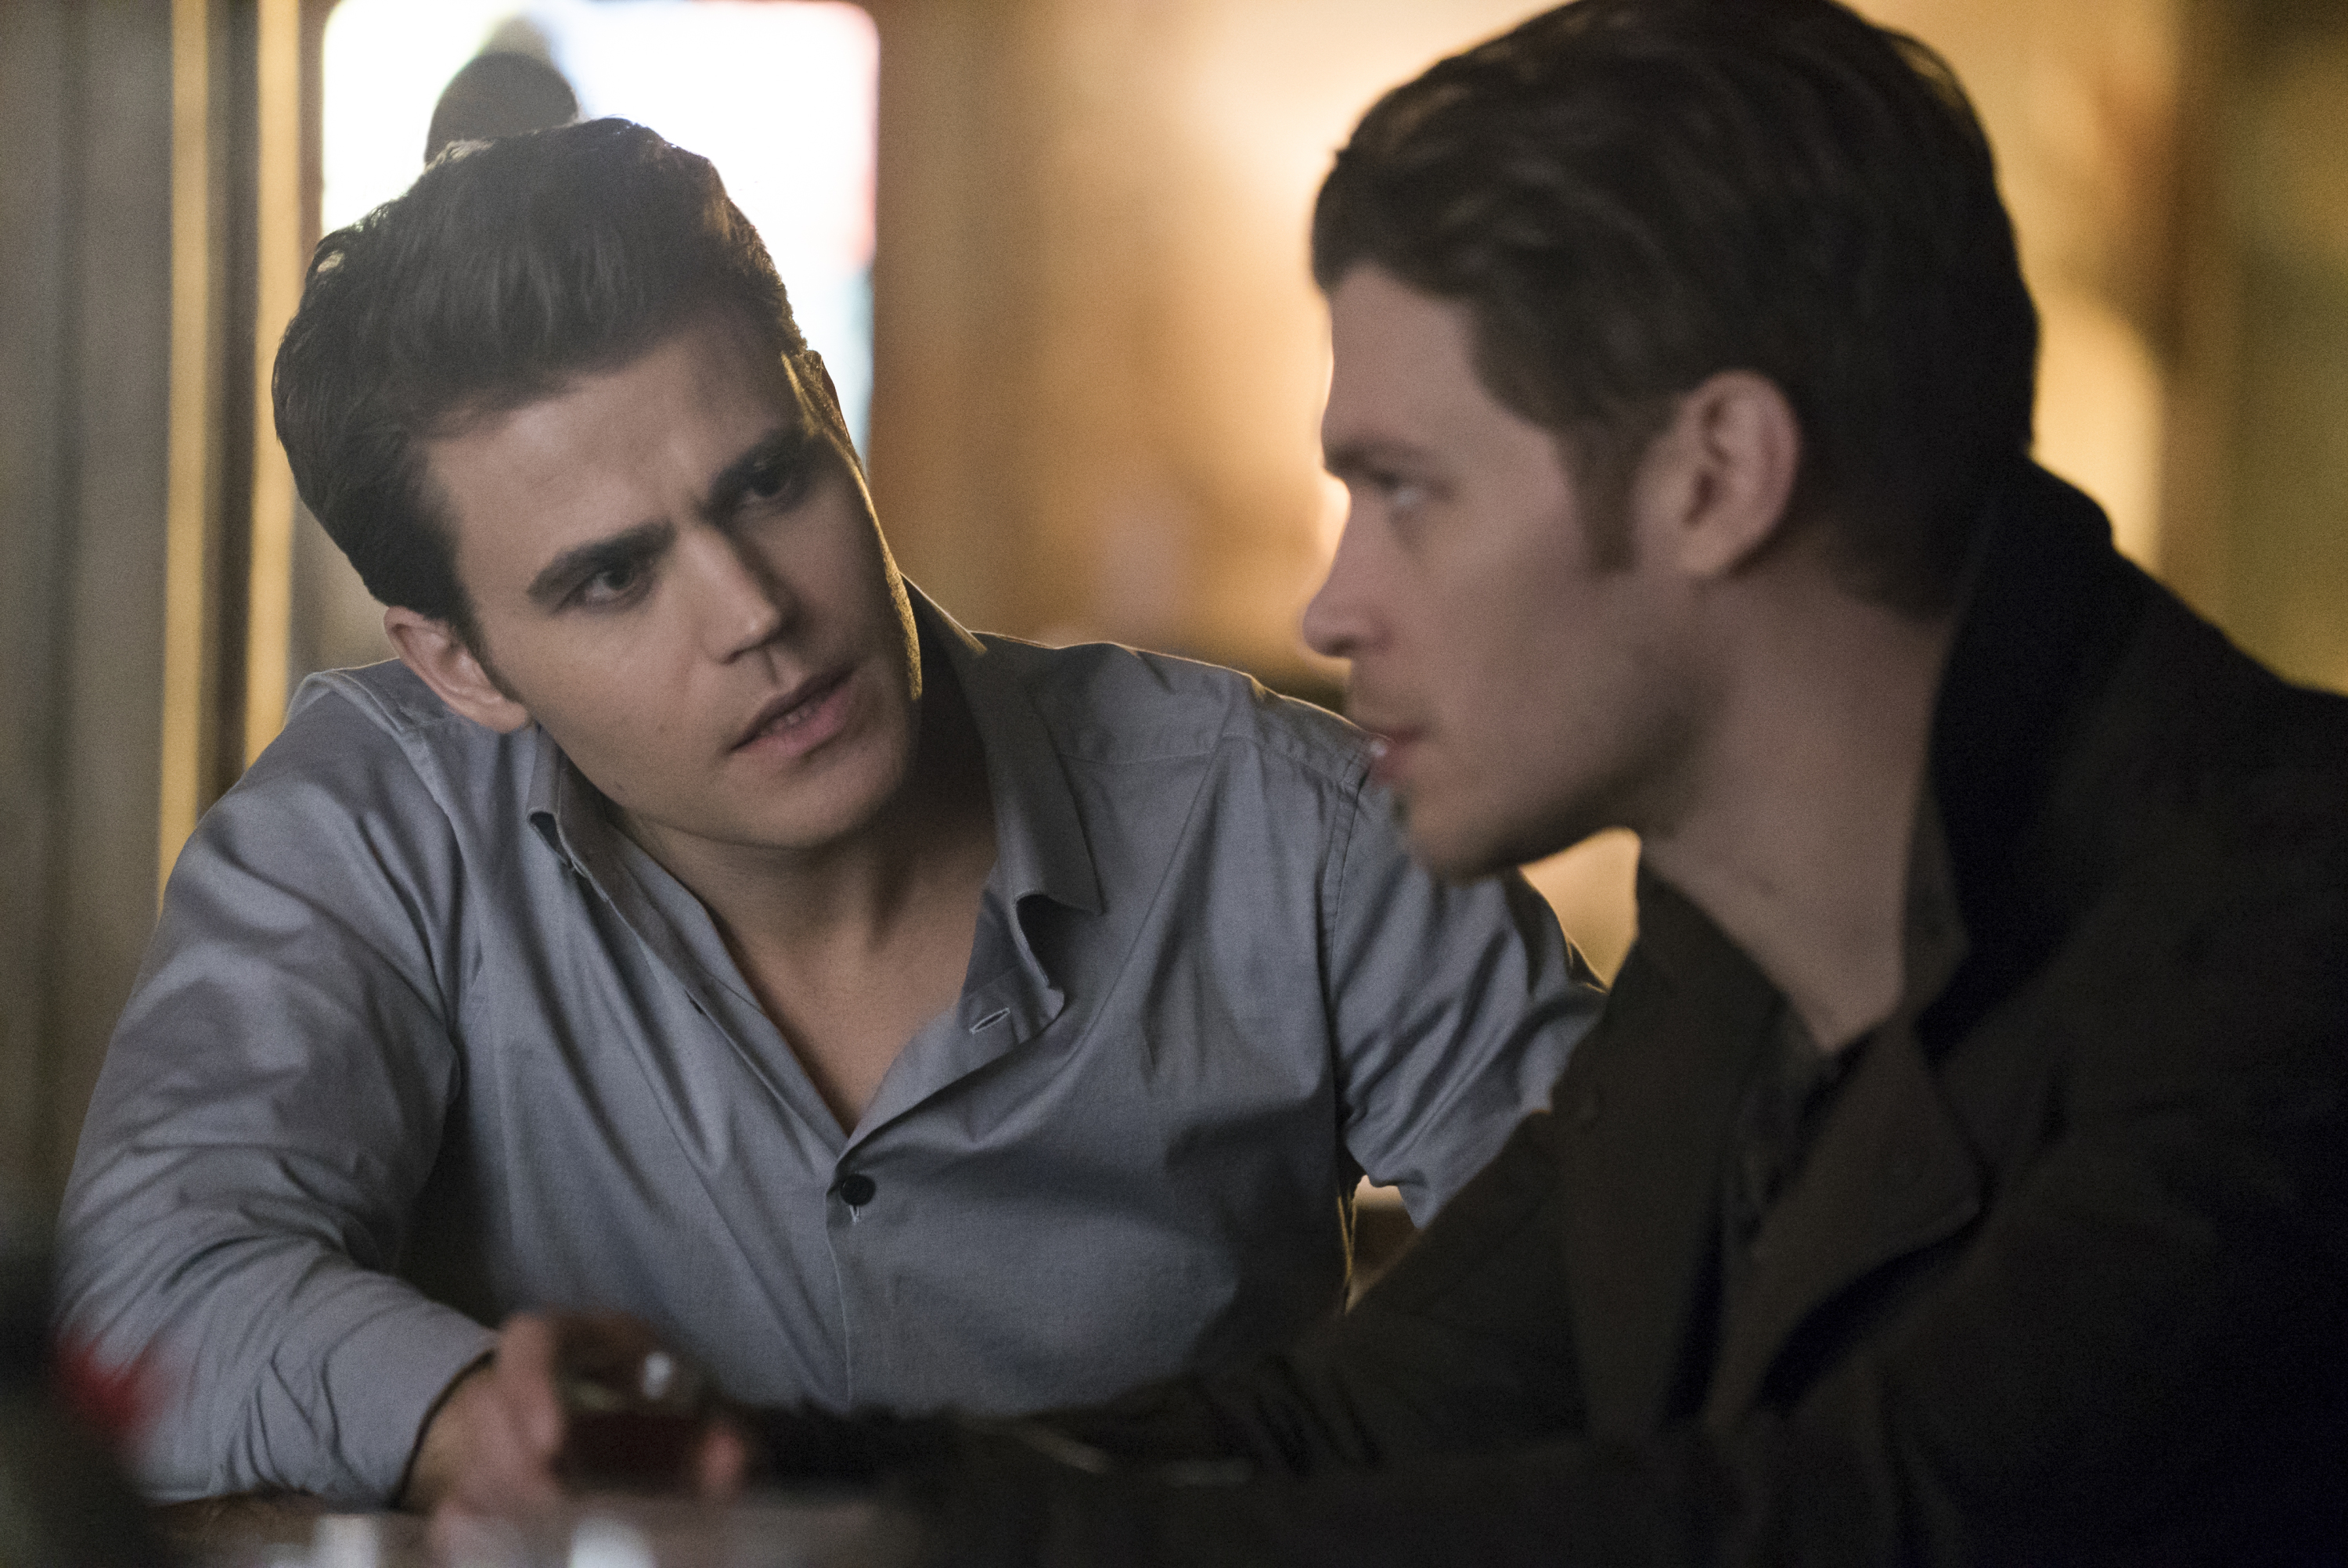 http://s1.ibtimes.com/sites/www.ibtimes.com/files/2016/02/25/vampire-diaries-714.jpg